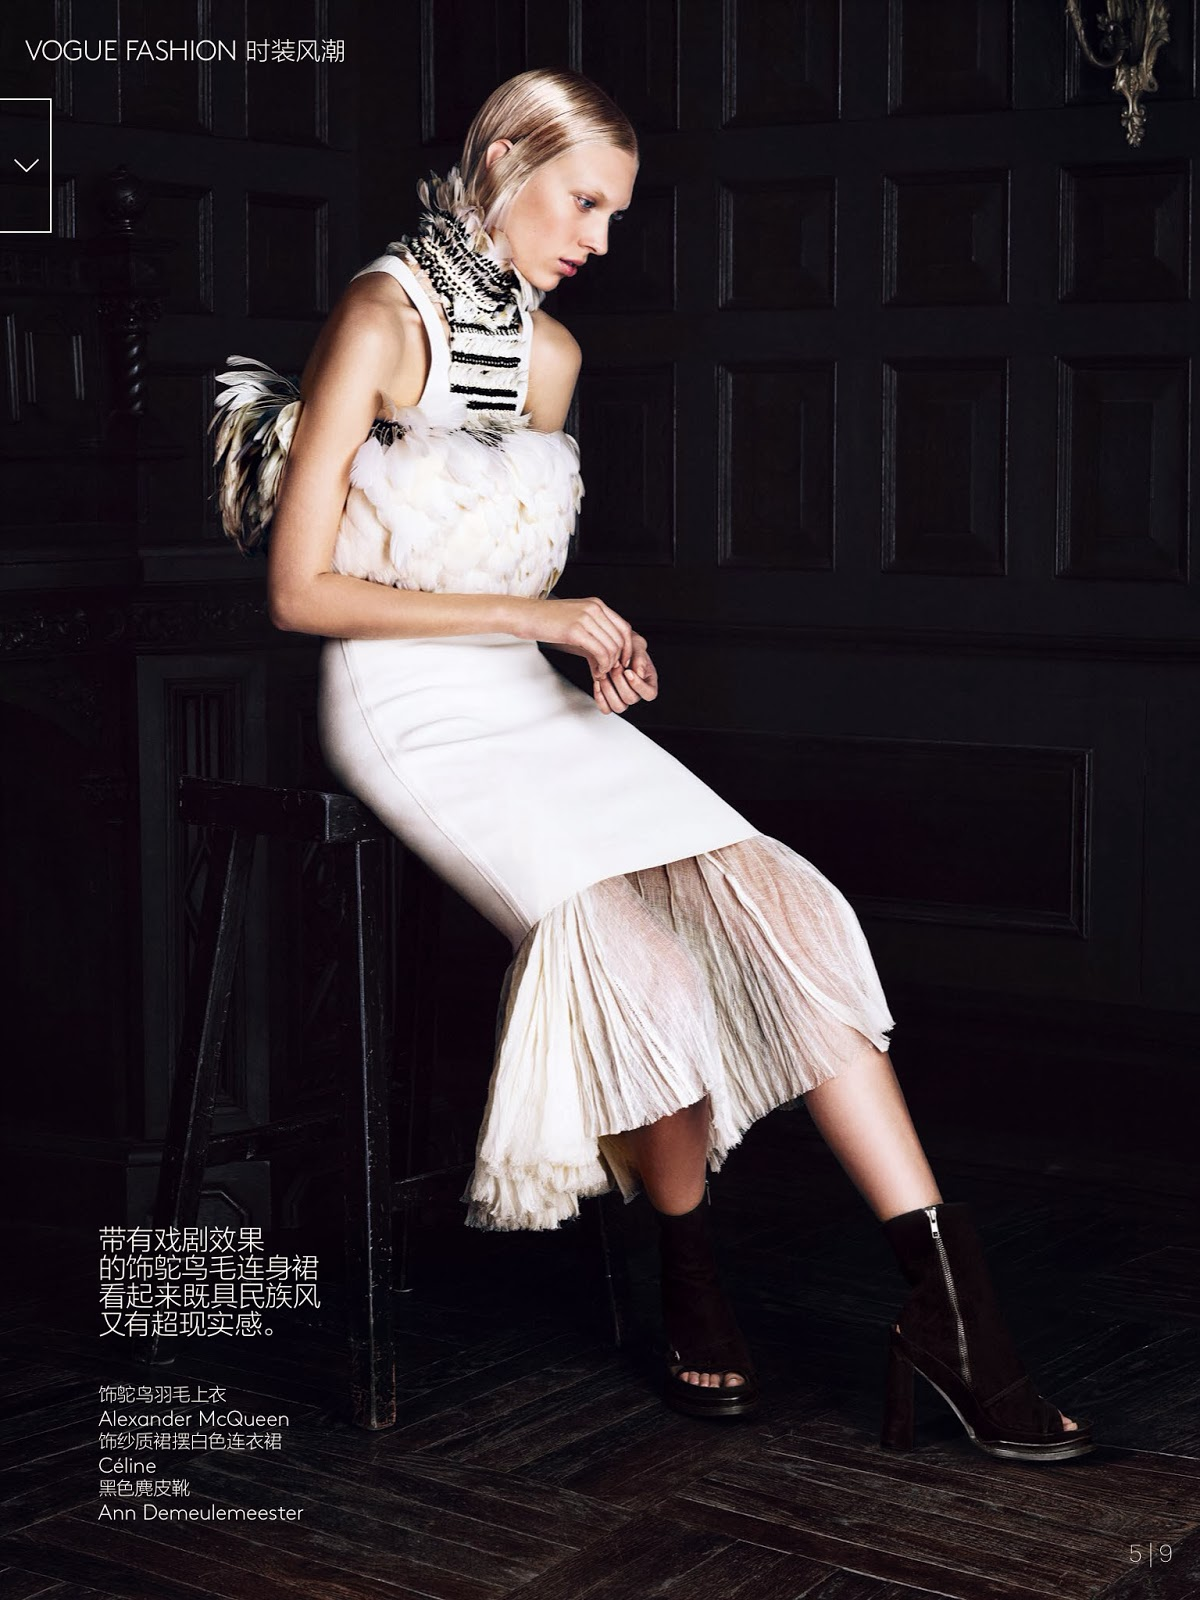 Juliana Schurig HQ Pictures Vogue China Magazine Photoshoot March 2014